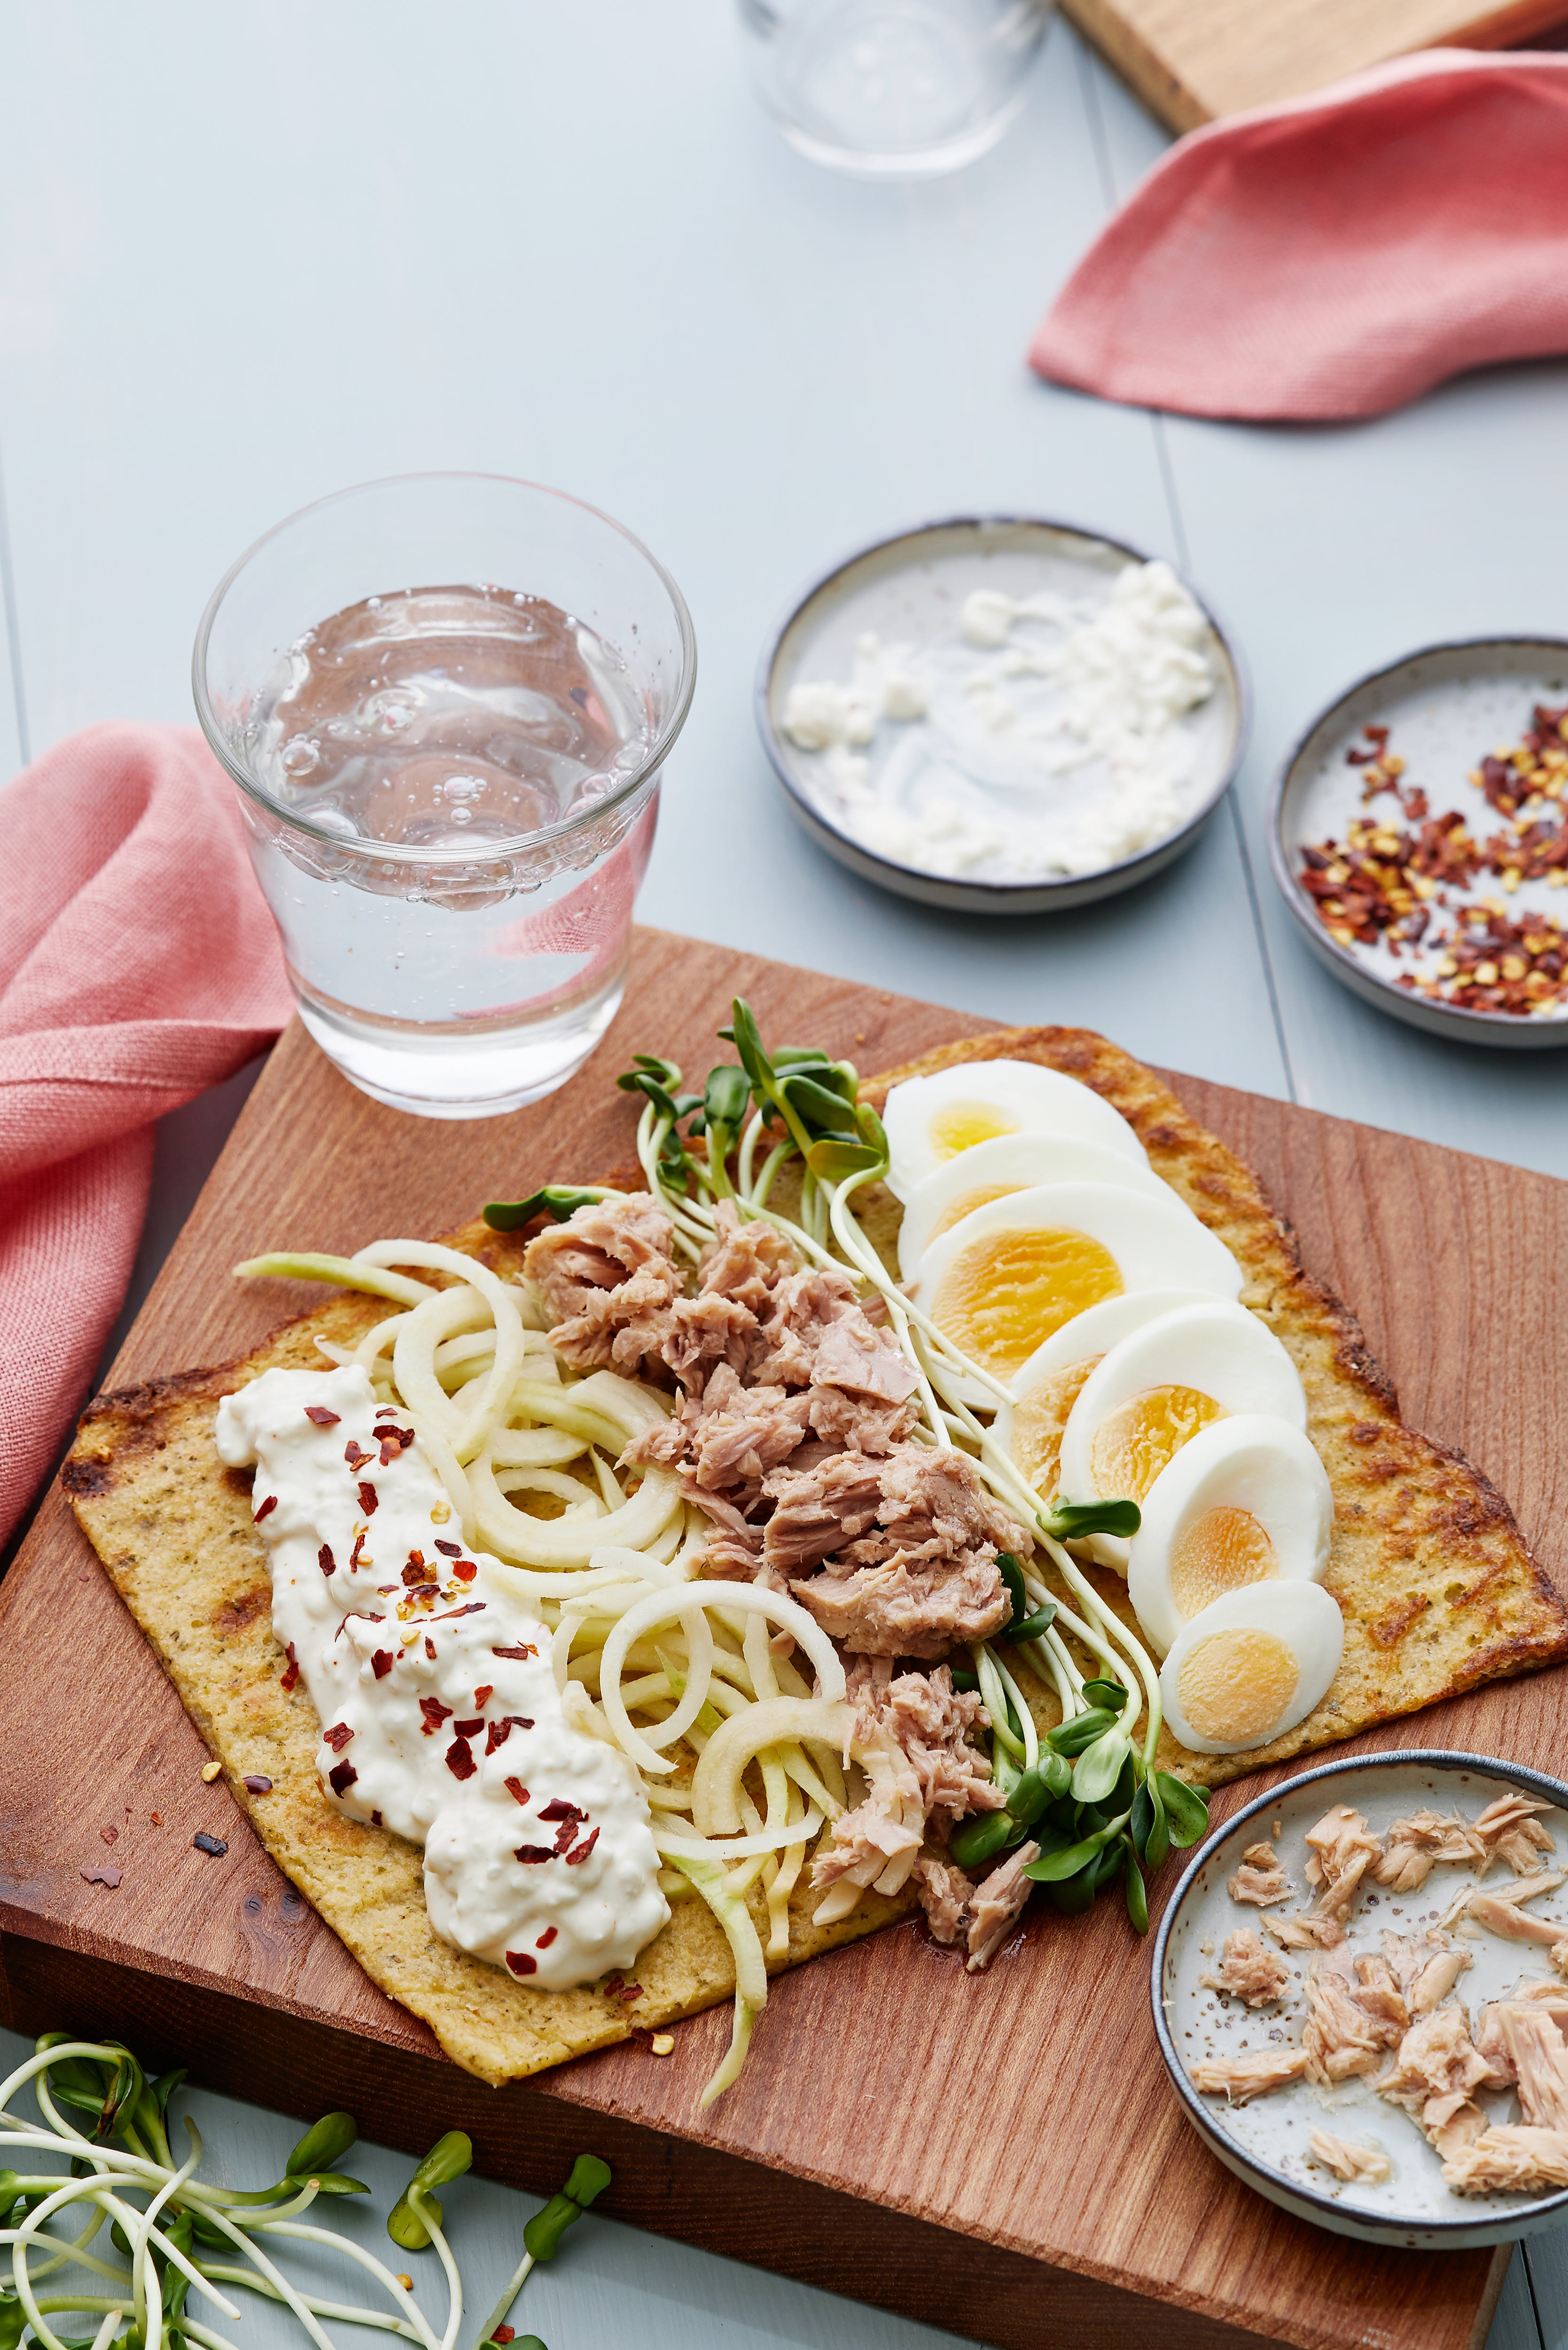 Gluten-free wrap with tuna and egg